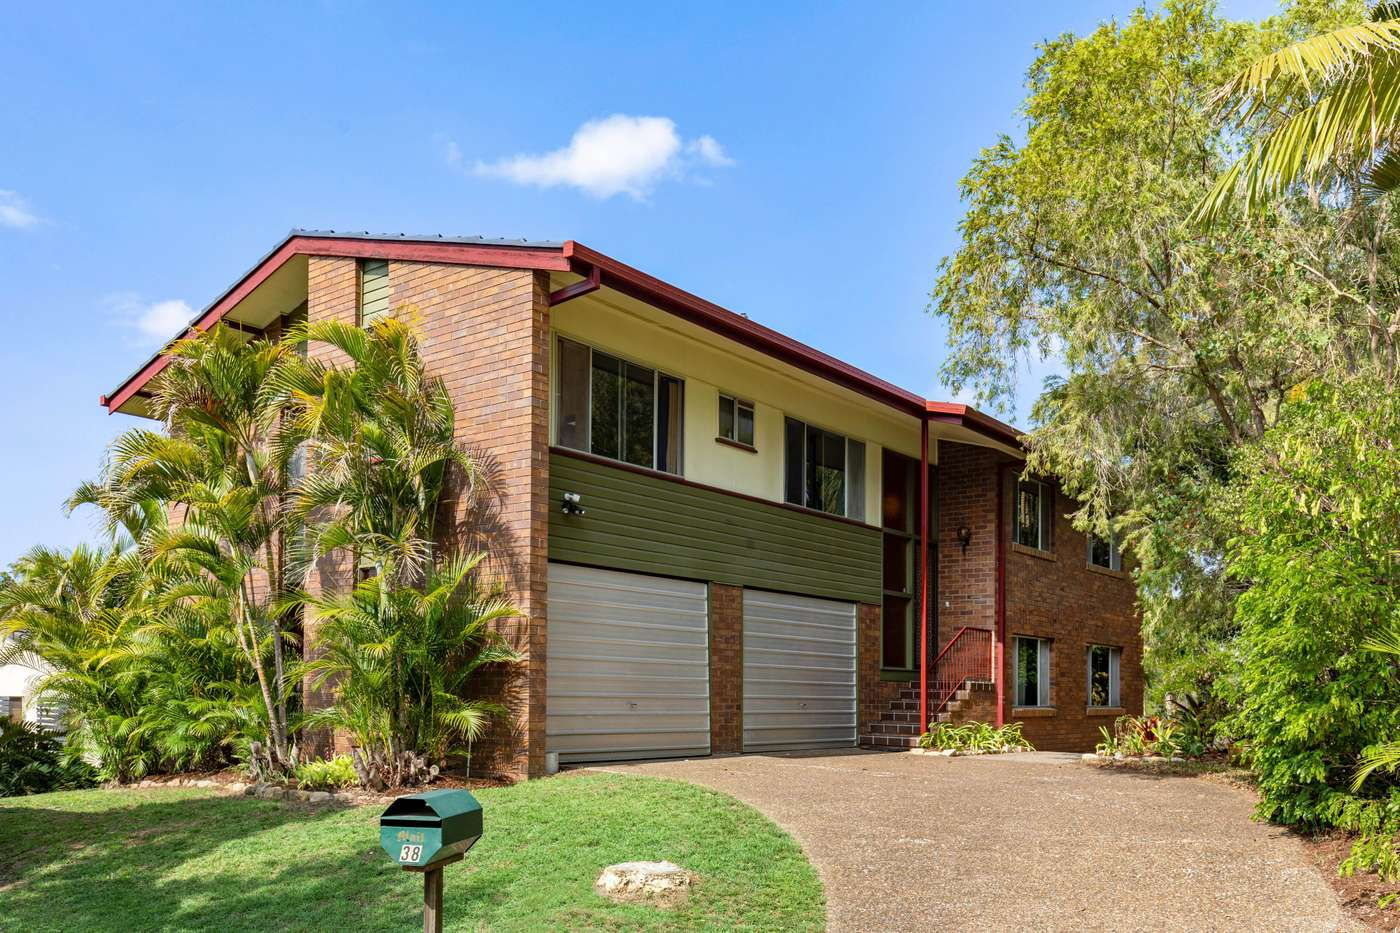 Main view of Homely house listing, 38 D'Aguilar Road, The Gap, QLD 4061